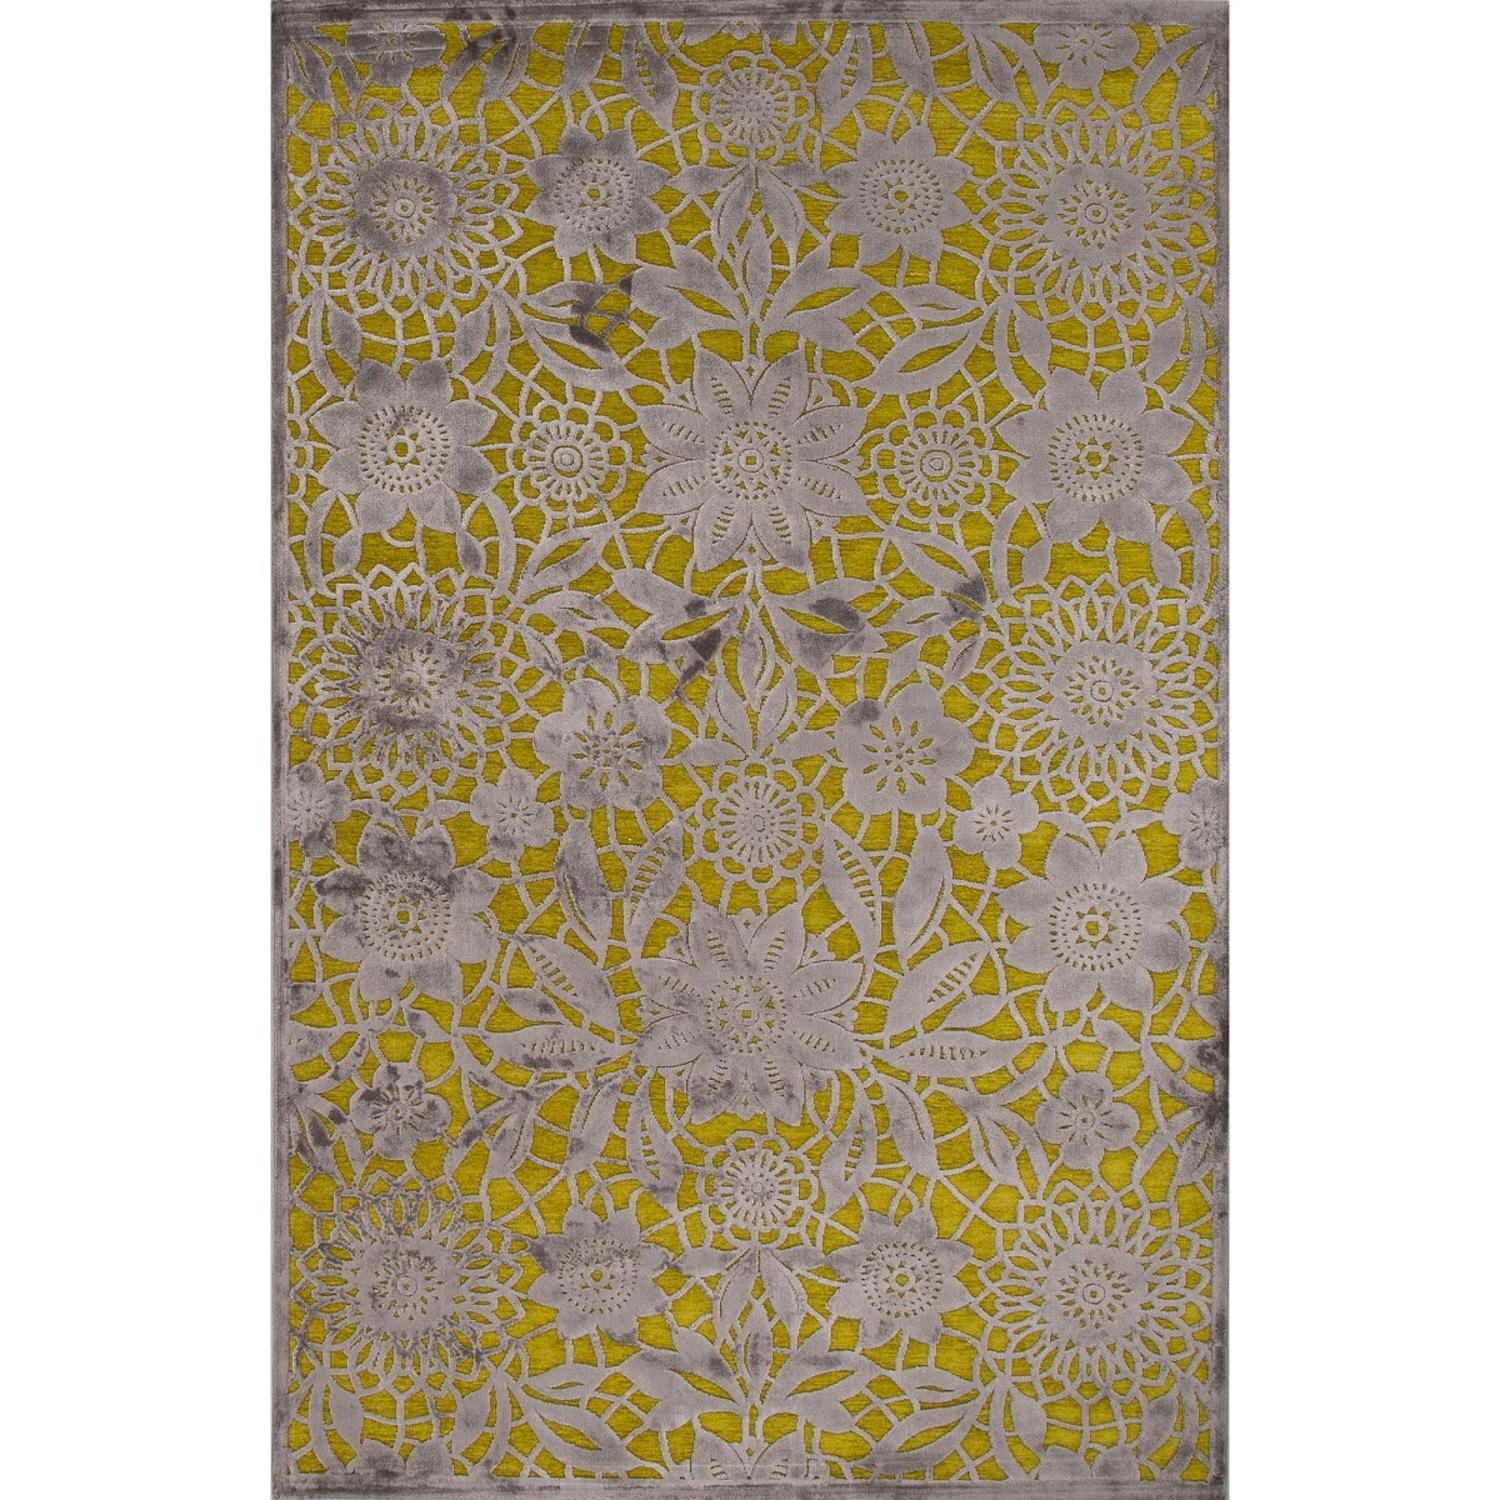 2' x 3' Sunflower Yellow and Gravel Gray Vivrant Floral Transitional Area Throw Rug